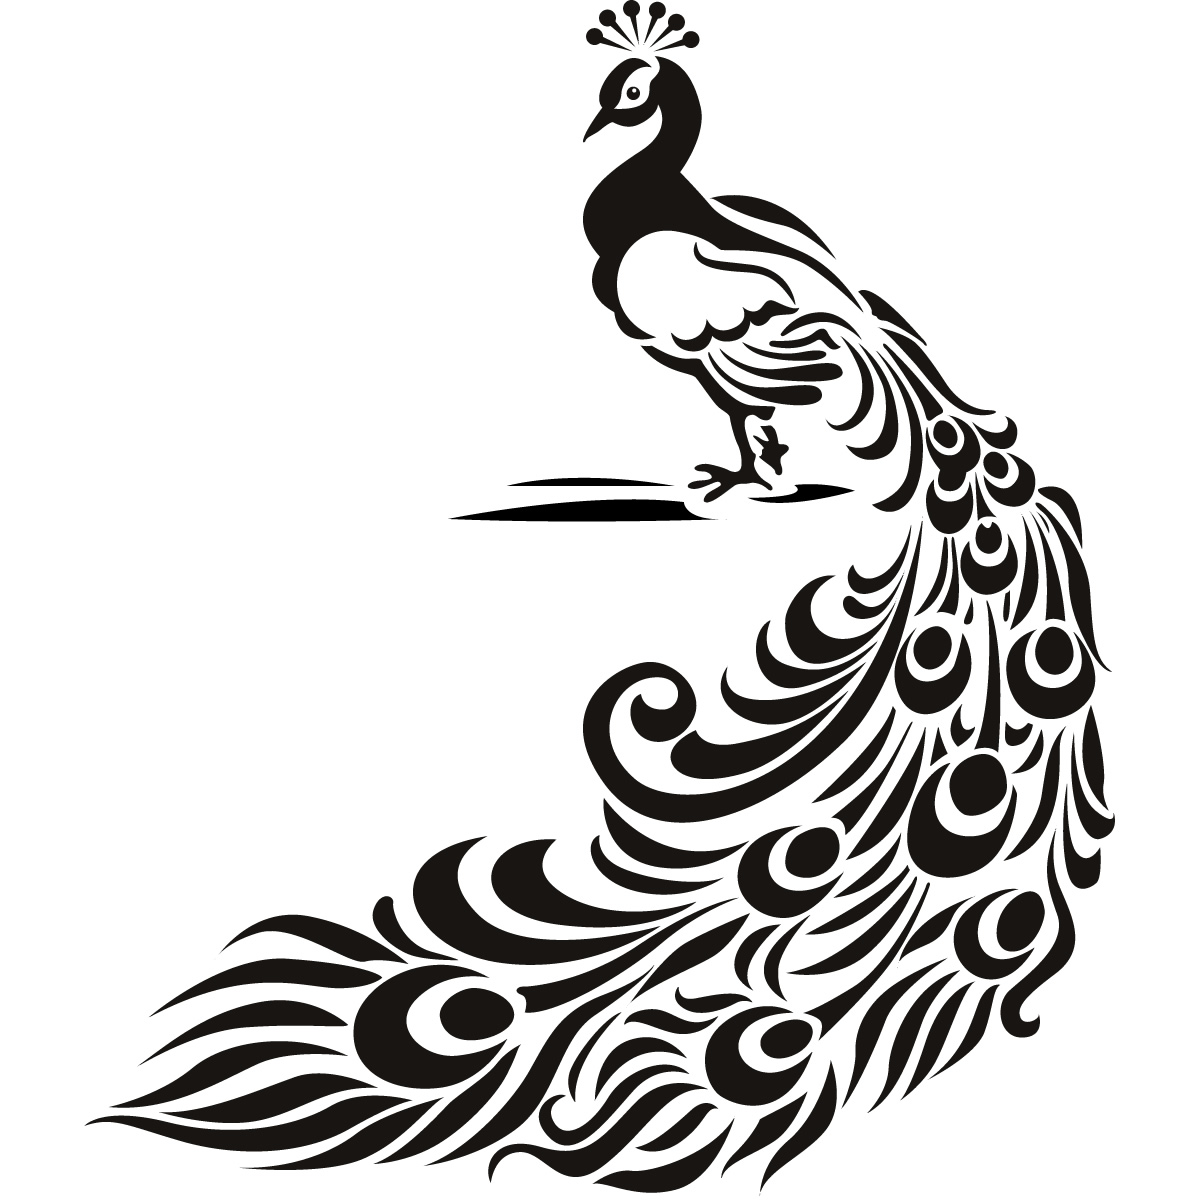 Peafowl clipart black and white Y ClipArt Peacocks Best Peacocks